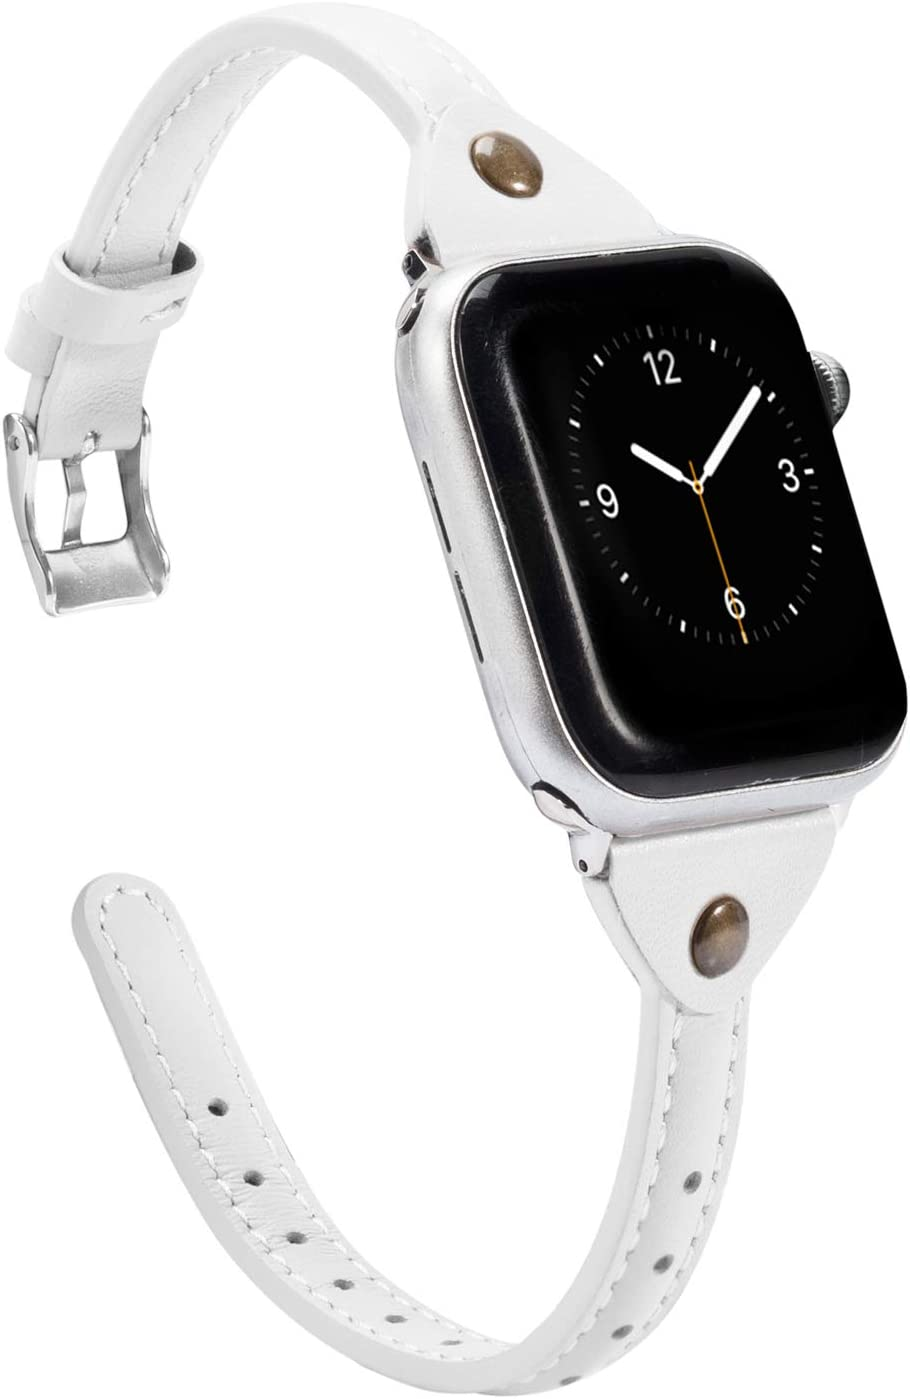 Wearlizer White Thin Leather Compatible with Apple Watch Bands 42mm 44mm for iWatch SE Womens Narrow Strap with Rivet Slim Sleek Stylish Cute Dressy Wristband (Silver Clasp) Series 6 5 4 3 2 1 Sport